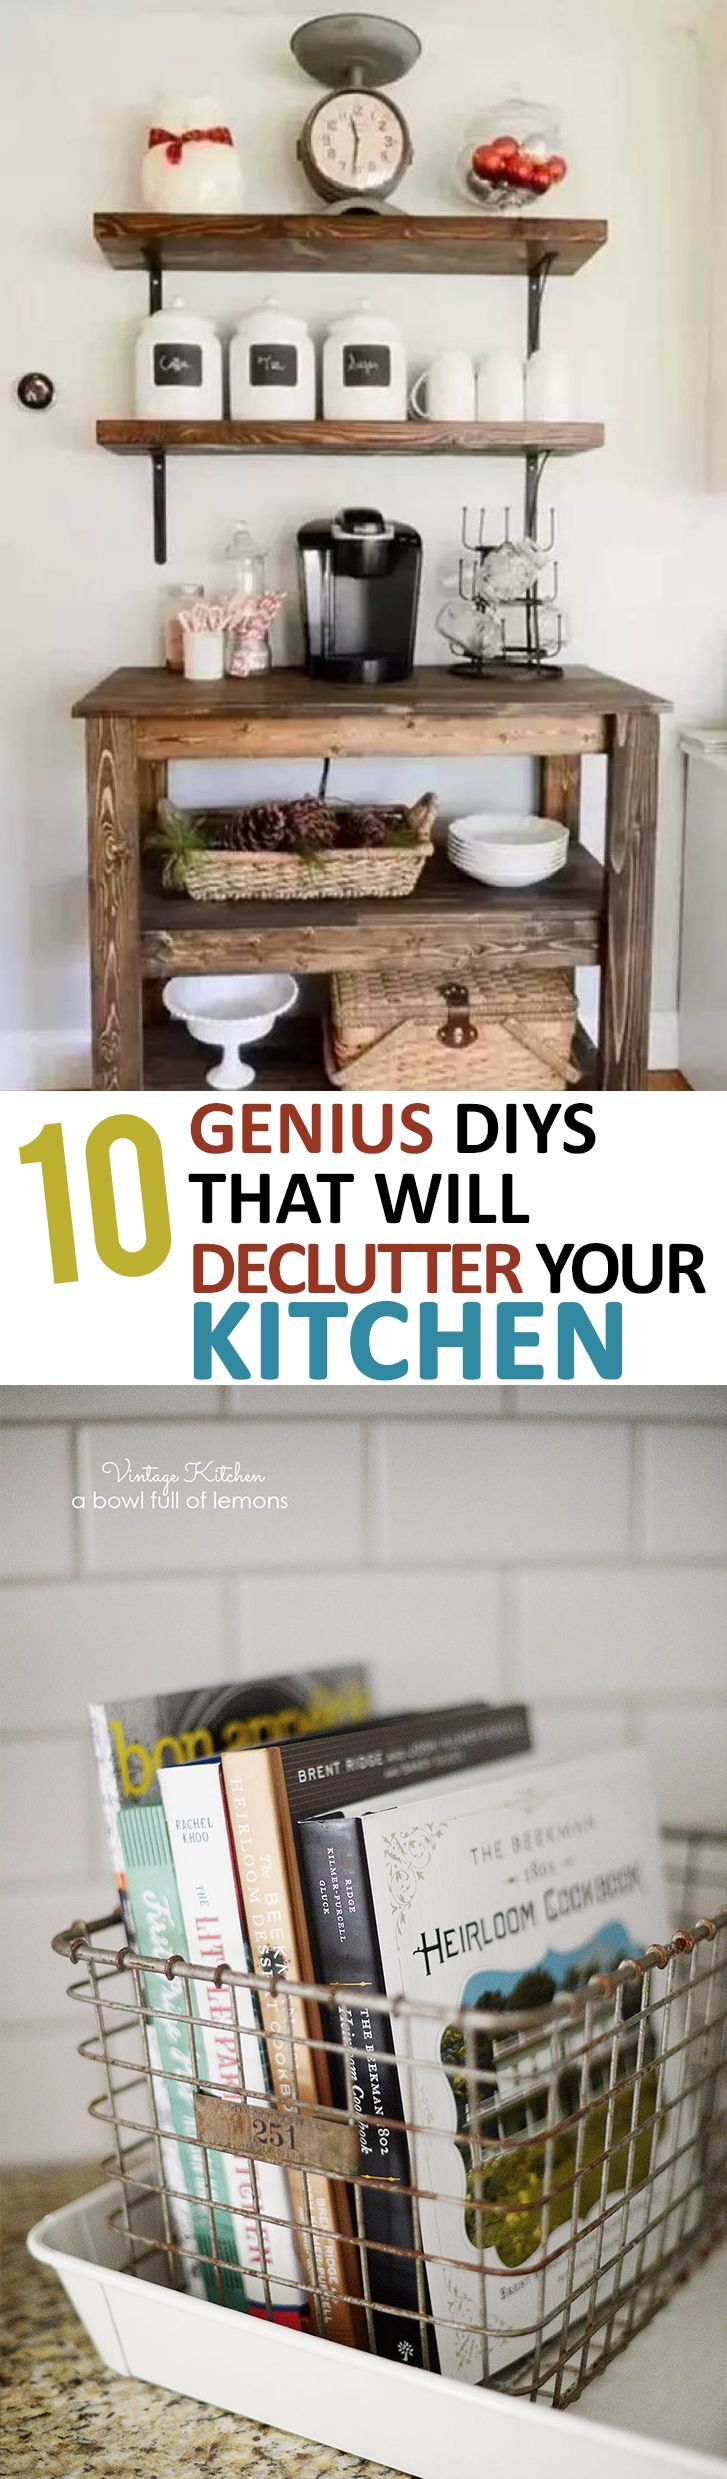 declutter your kitchen, how to organize your kitchen, easy kitchen